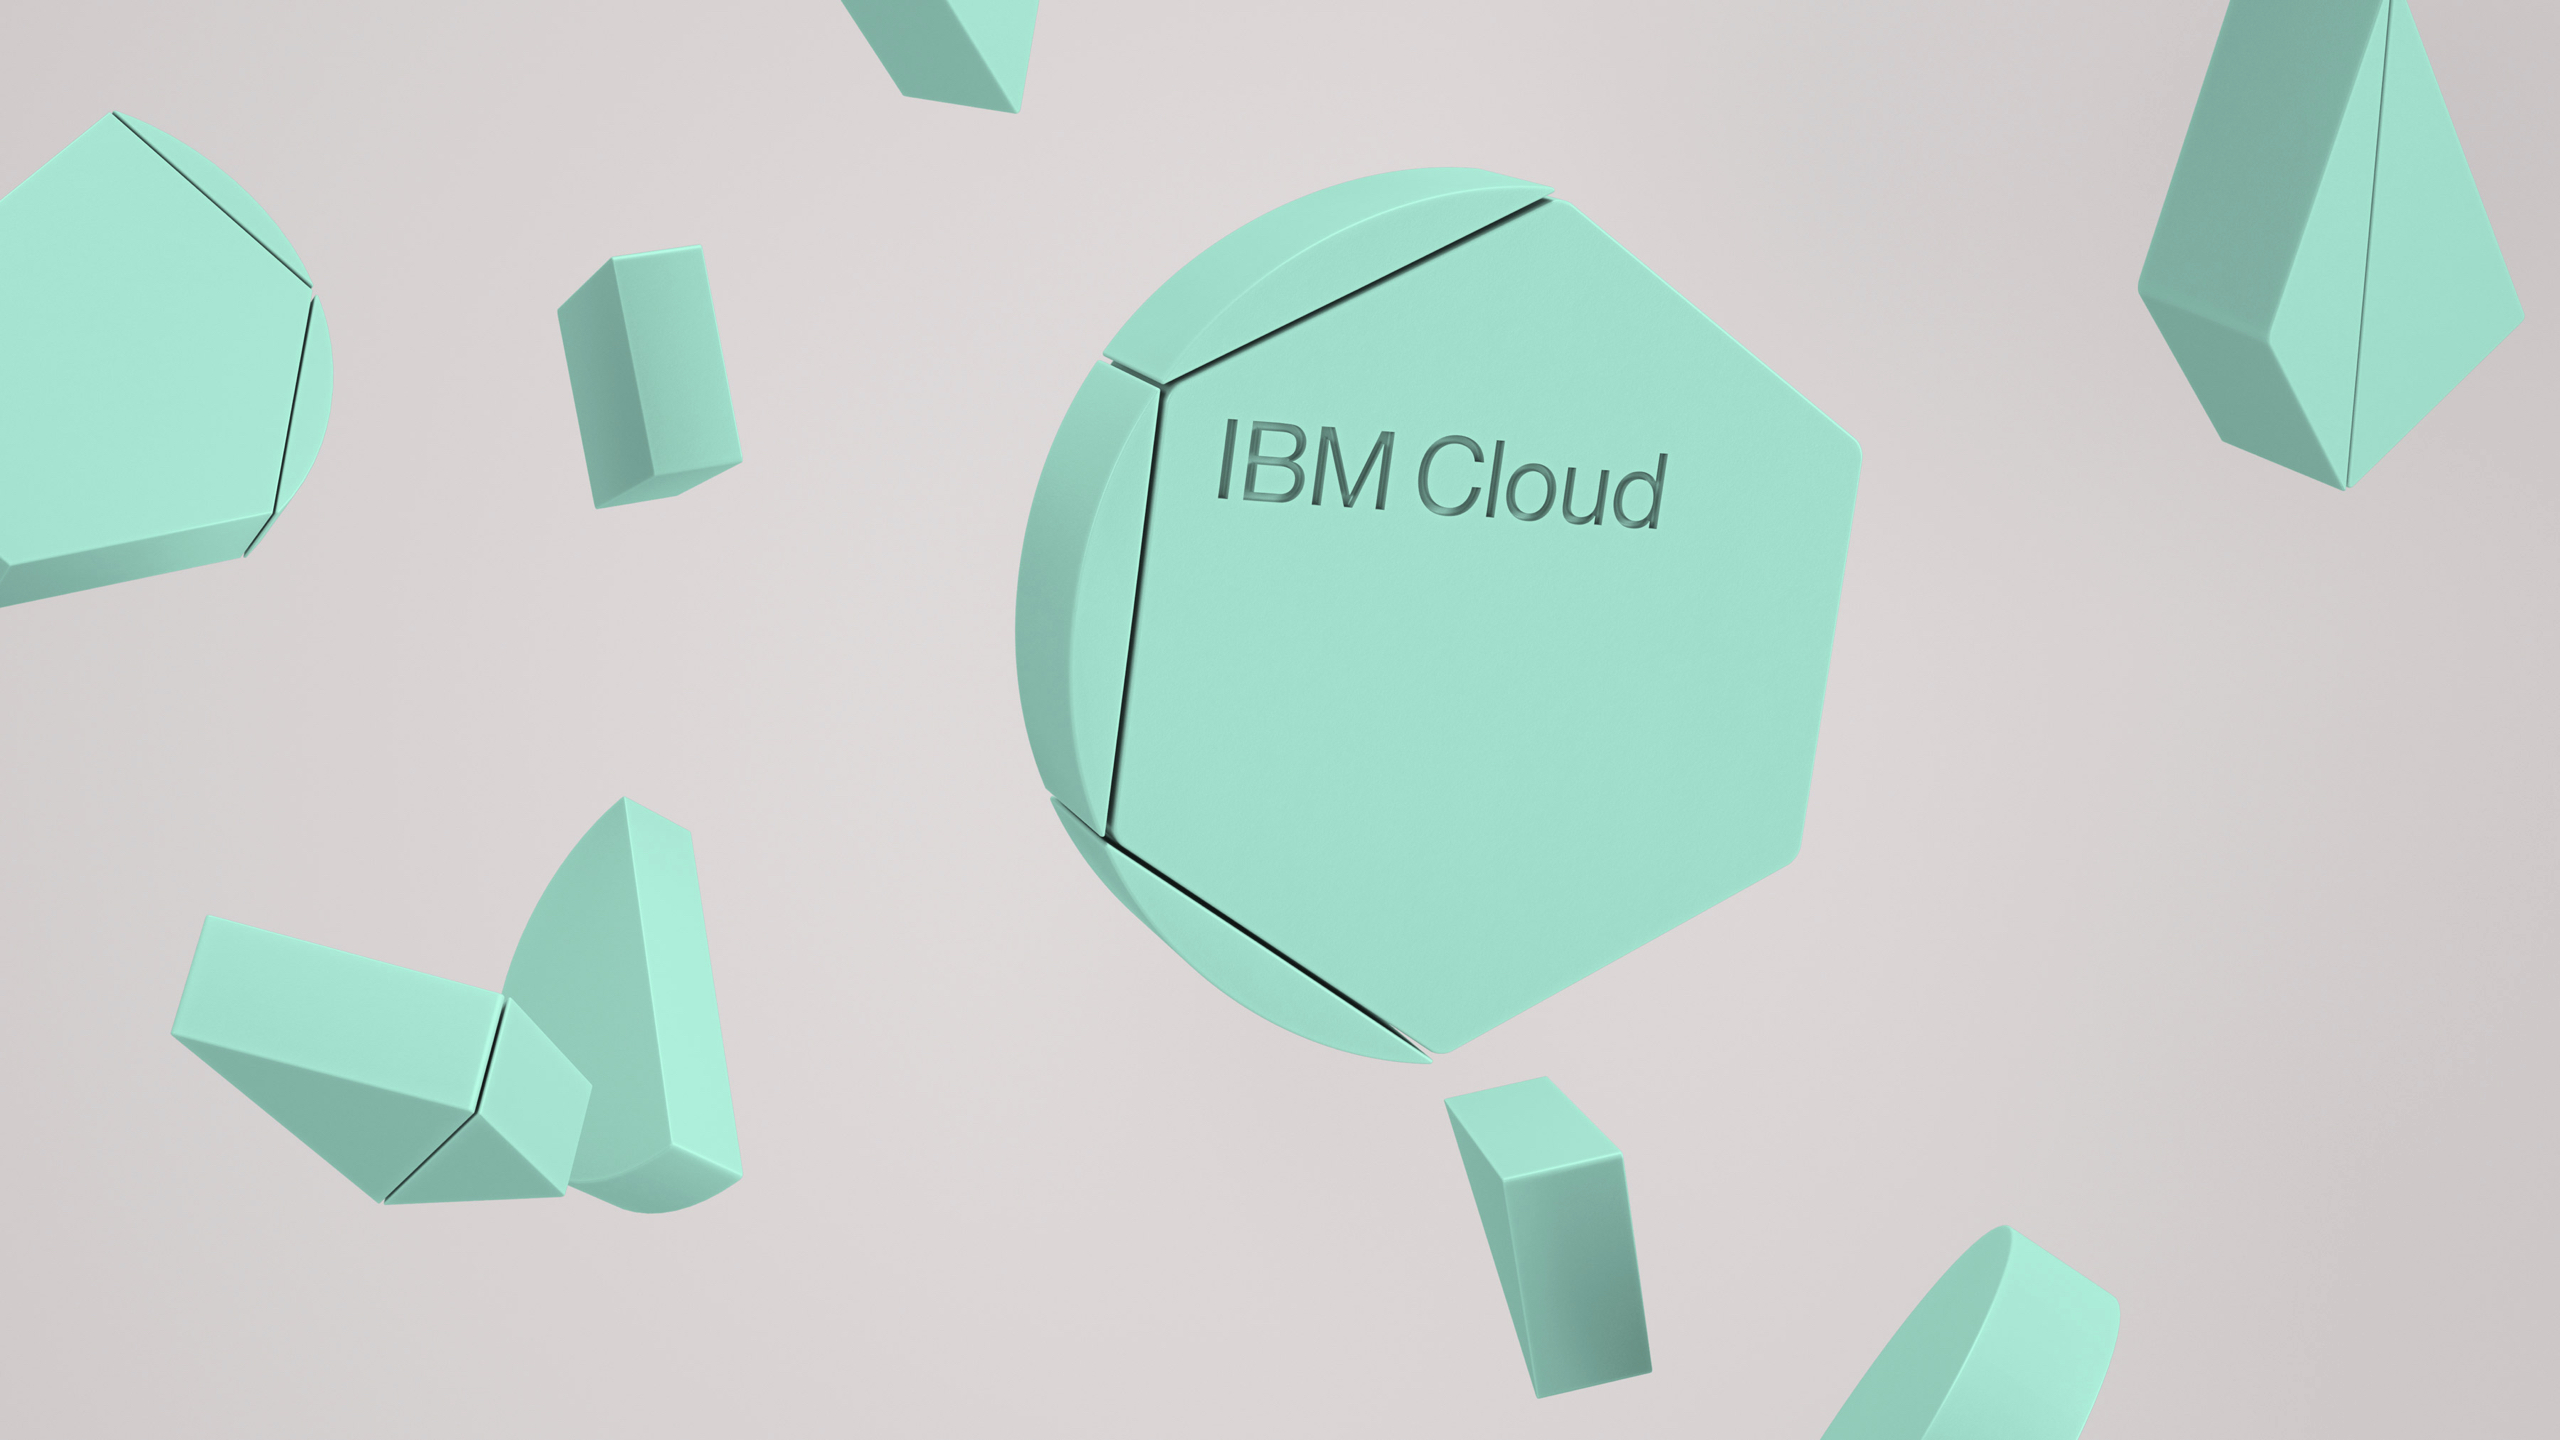 IBM Cloud → Brand Expression 1.0